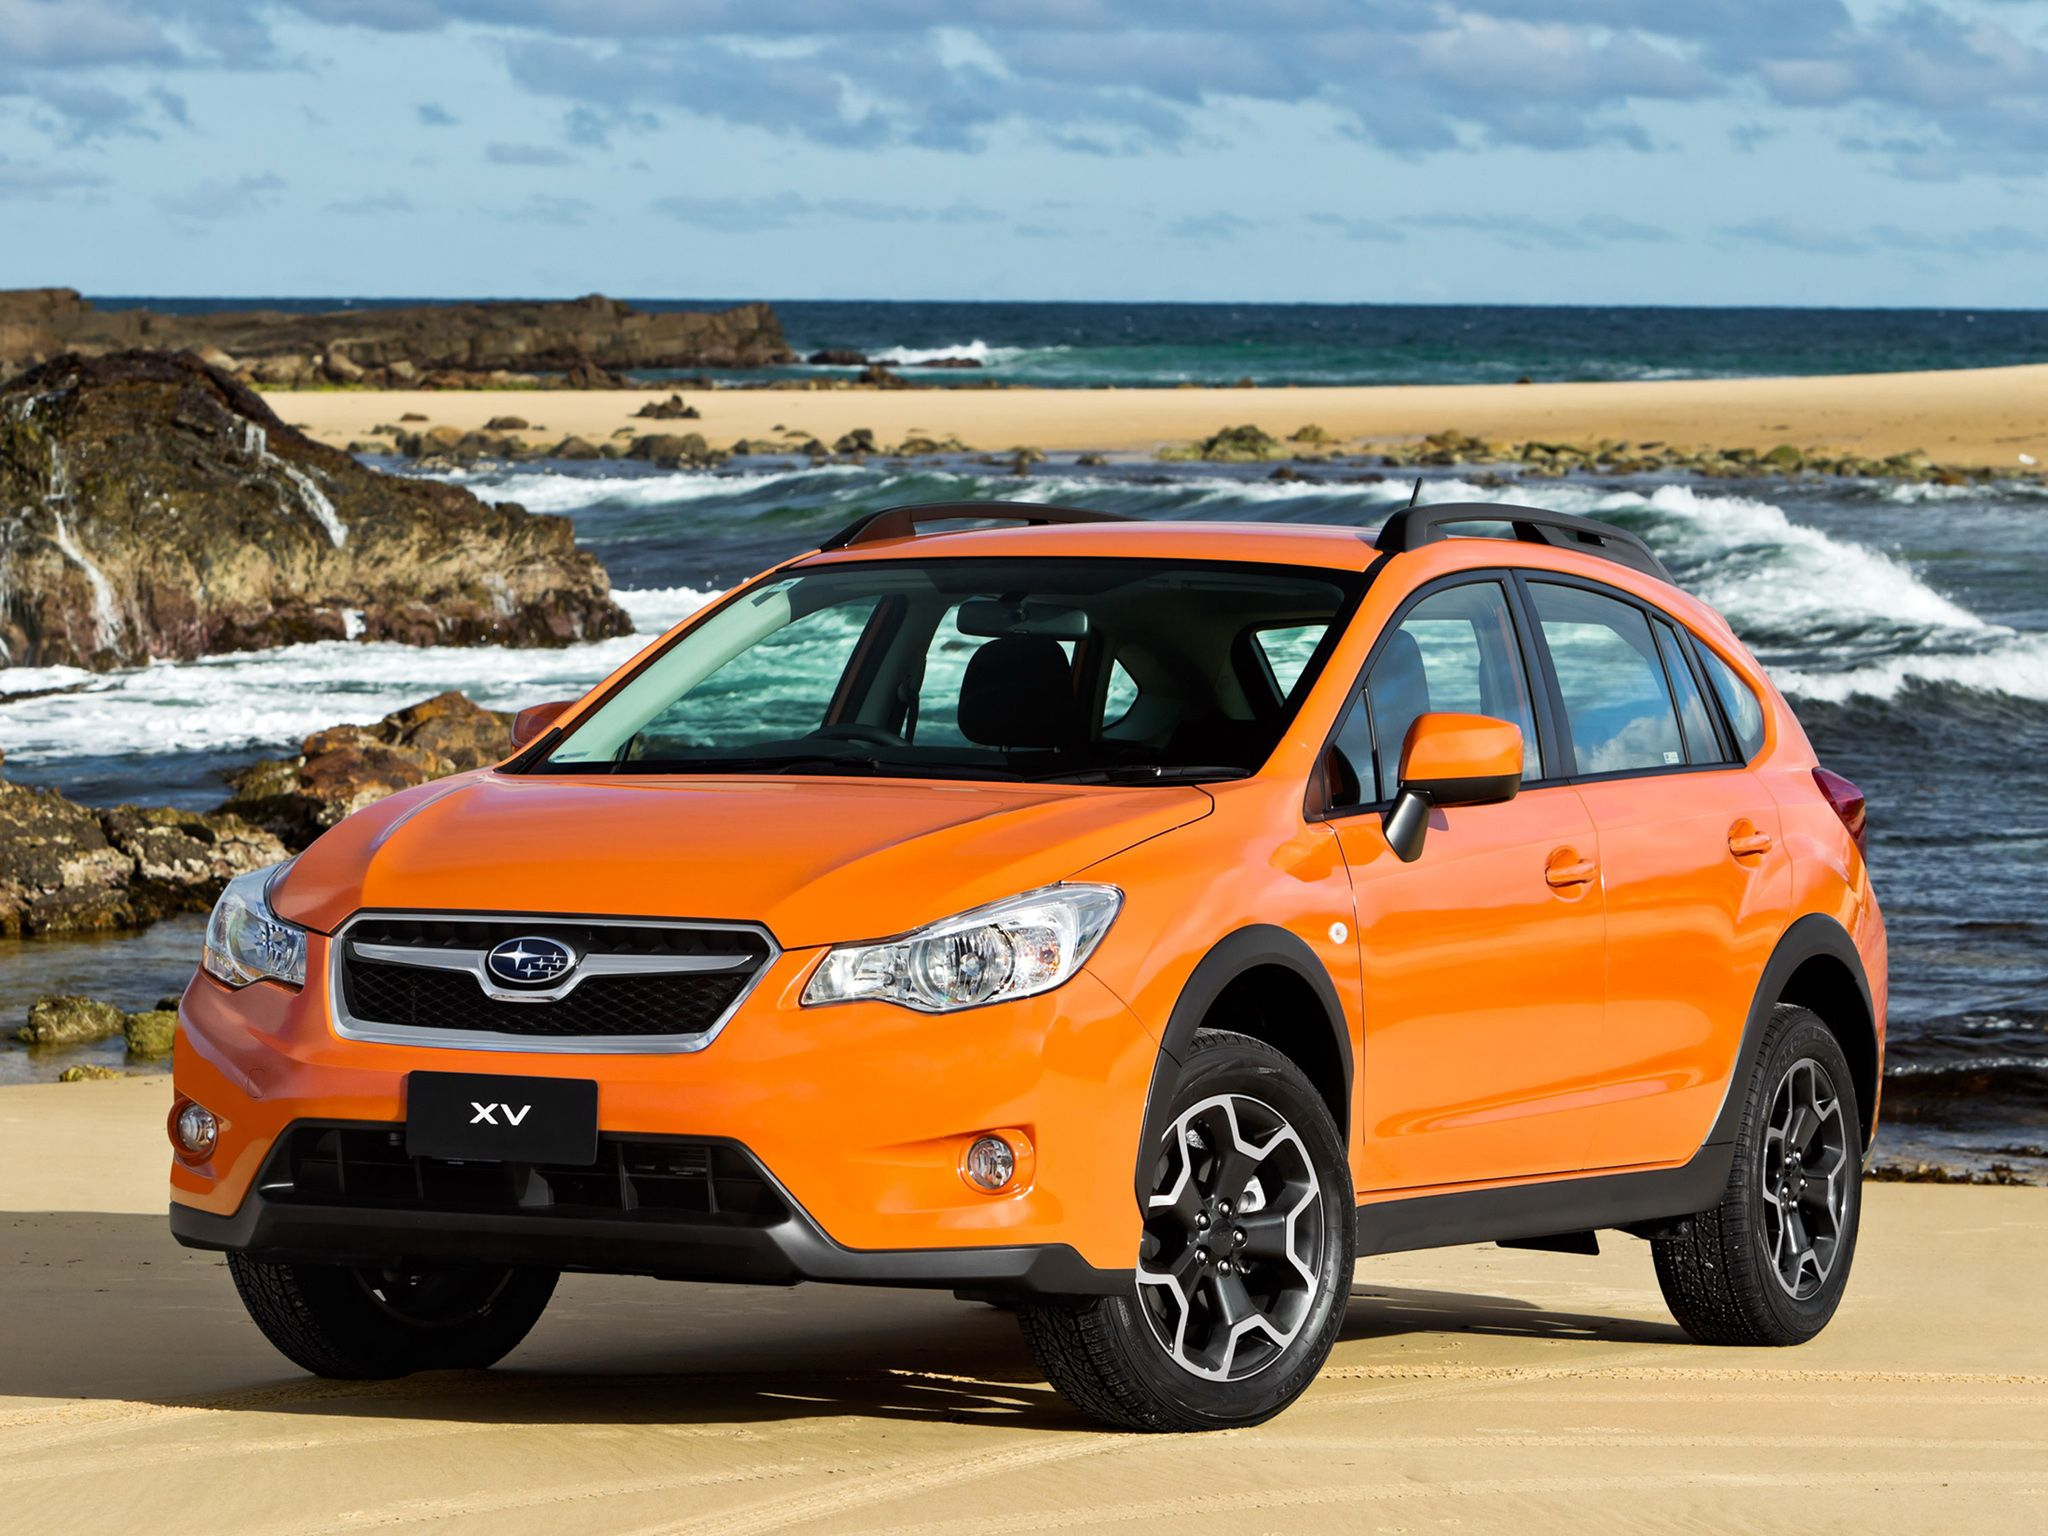 Passion For Excellence Subaru Crosstrek Subaru Orange Car